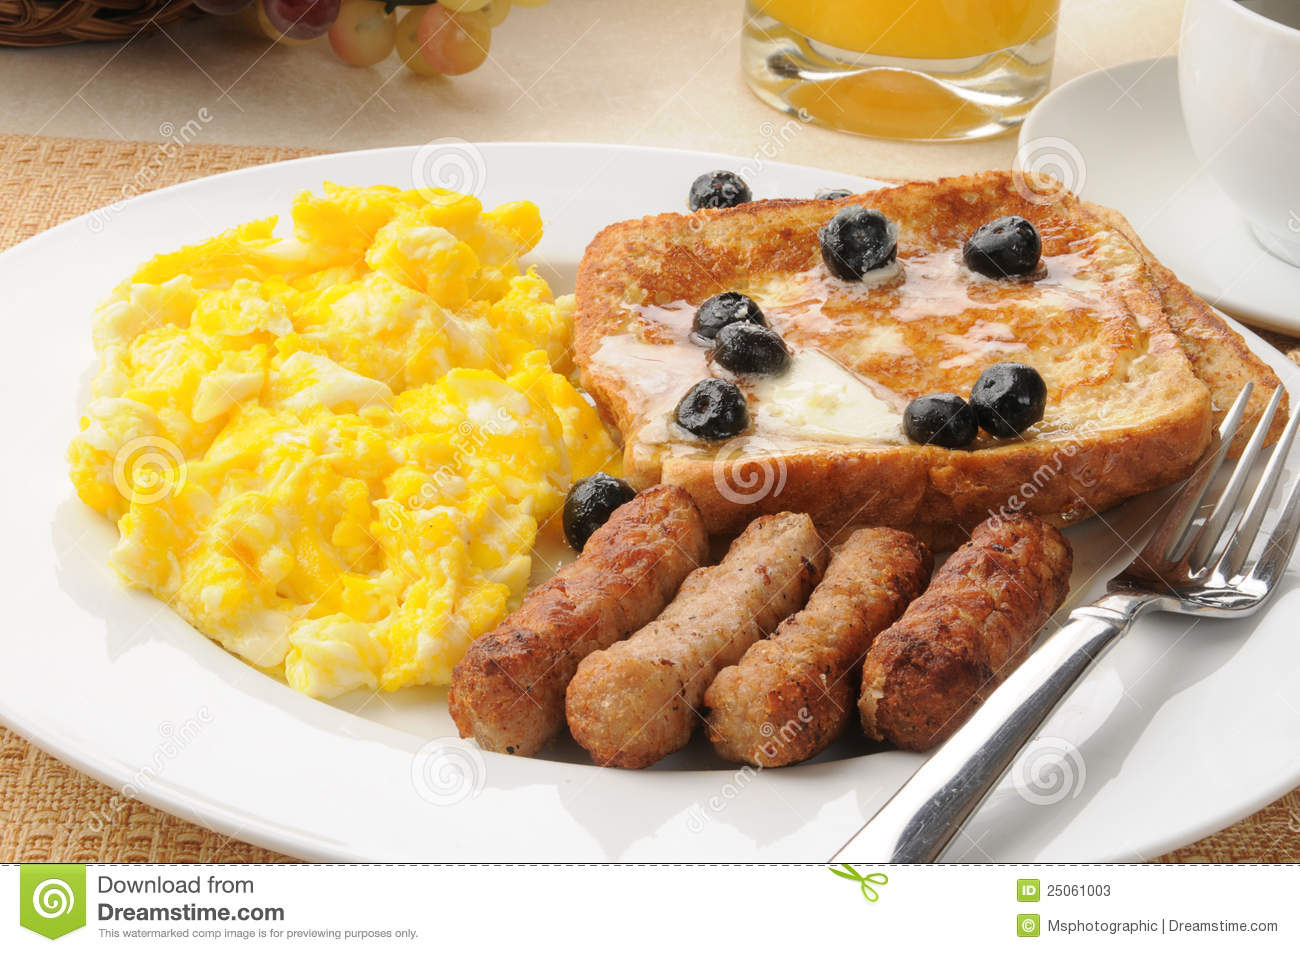 sausage and egg breakfast with french toast and blueberries.